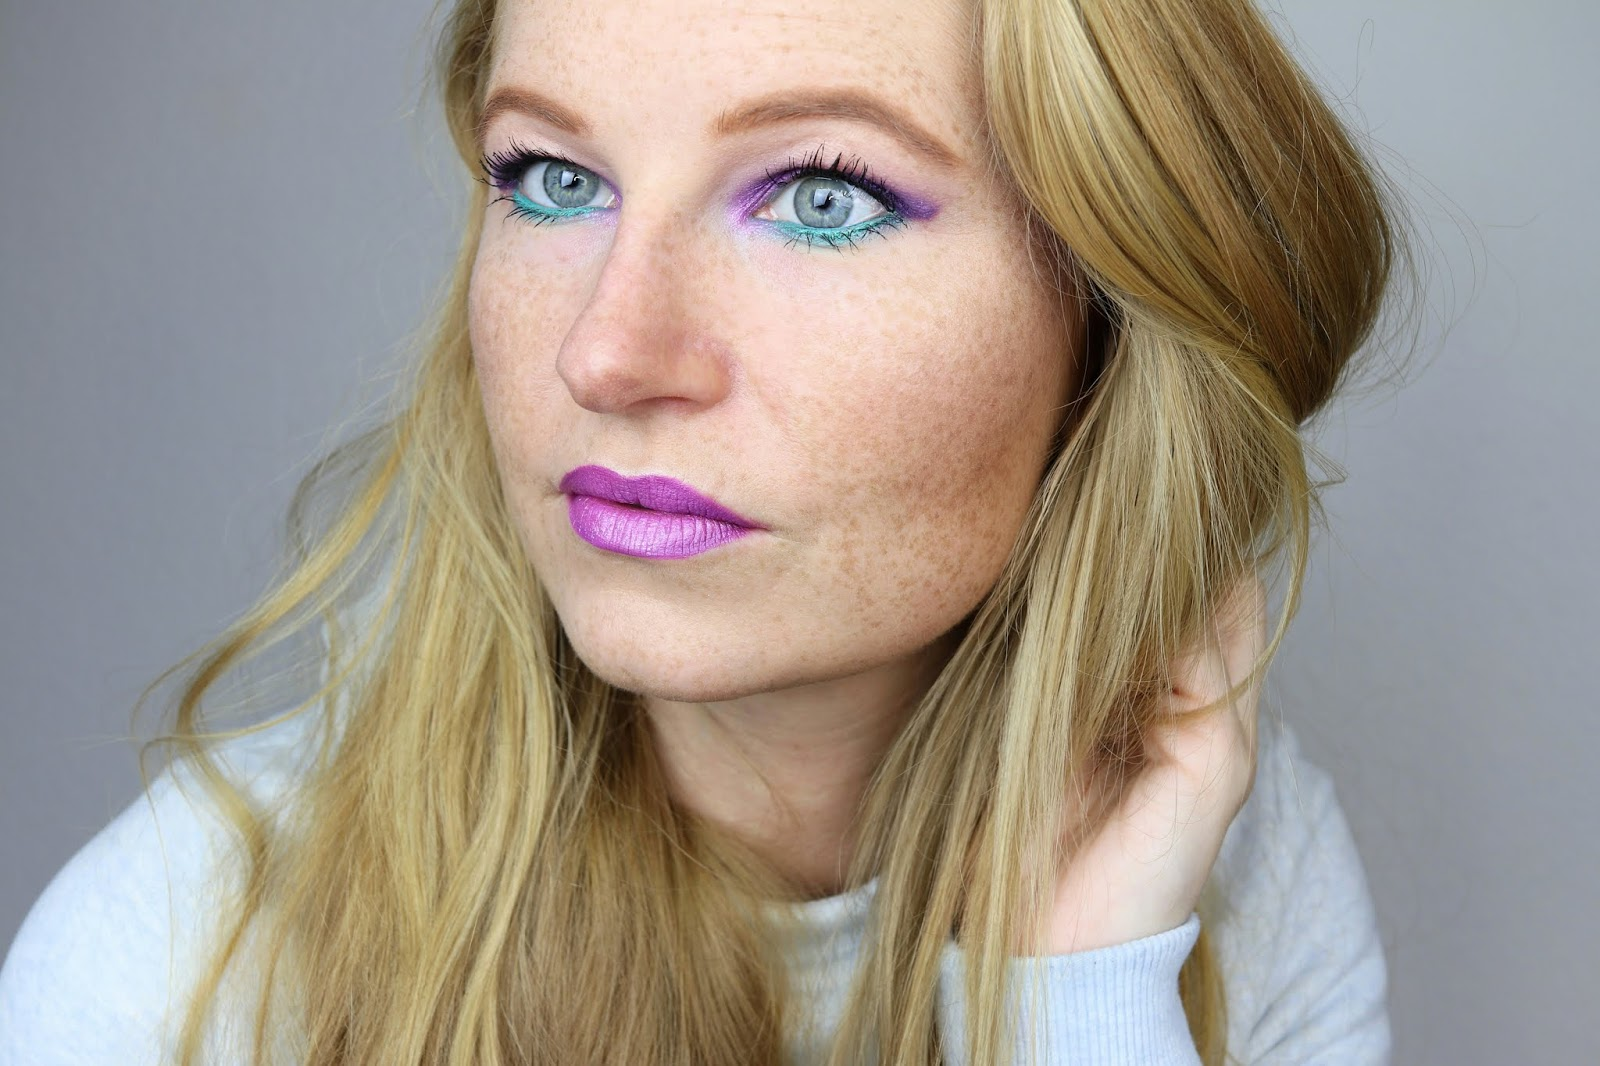 https://www.zaphiraw.de/2019/01/purple-turquoise-make-up-zum.html